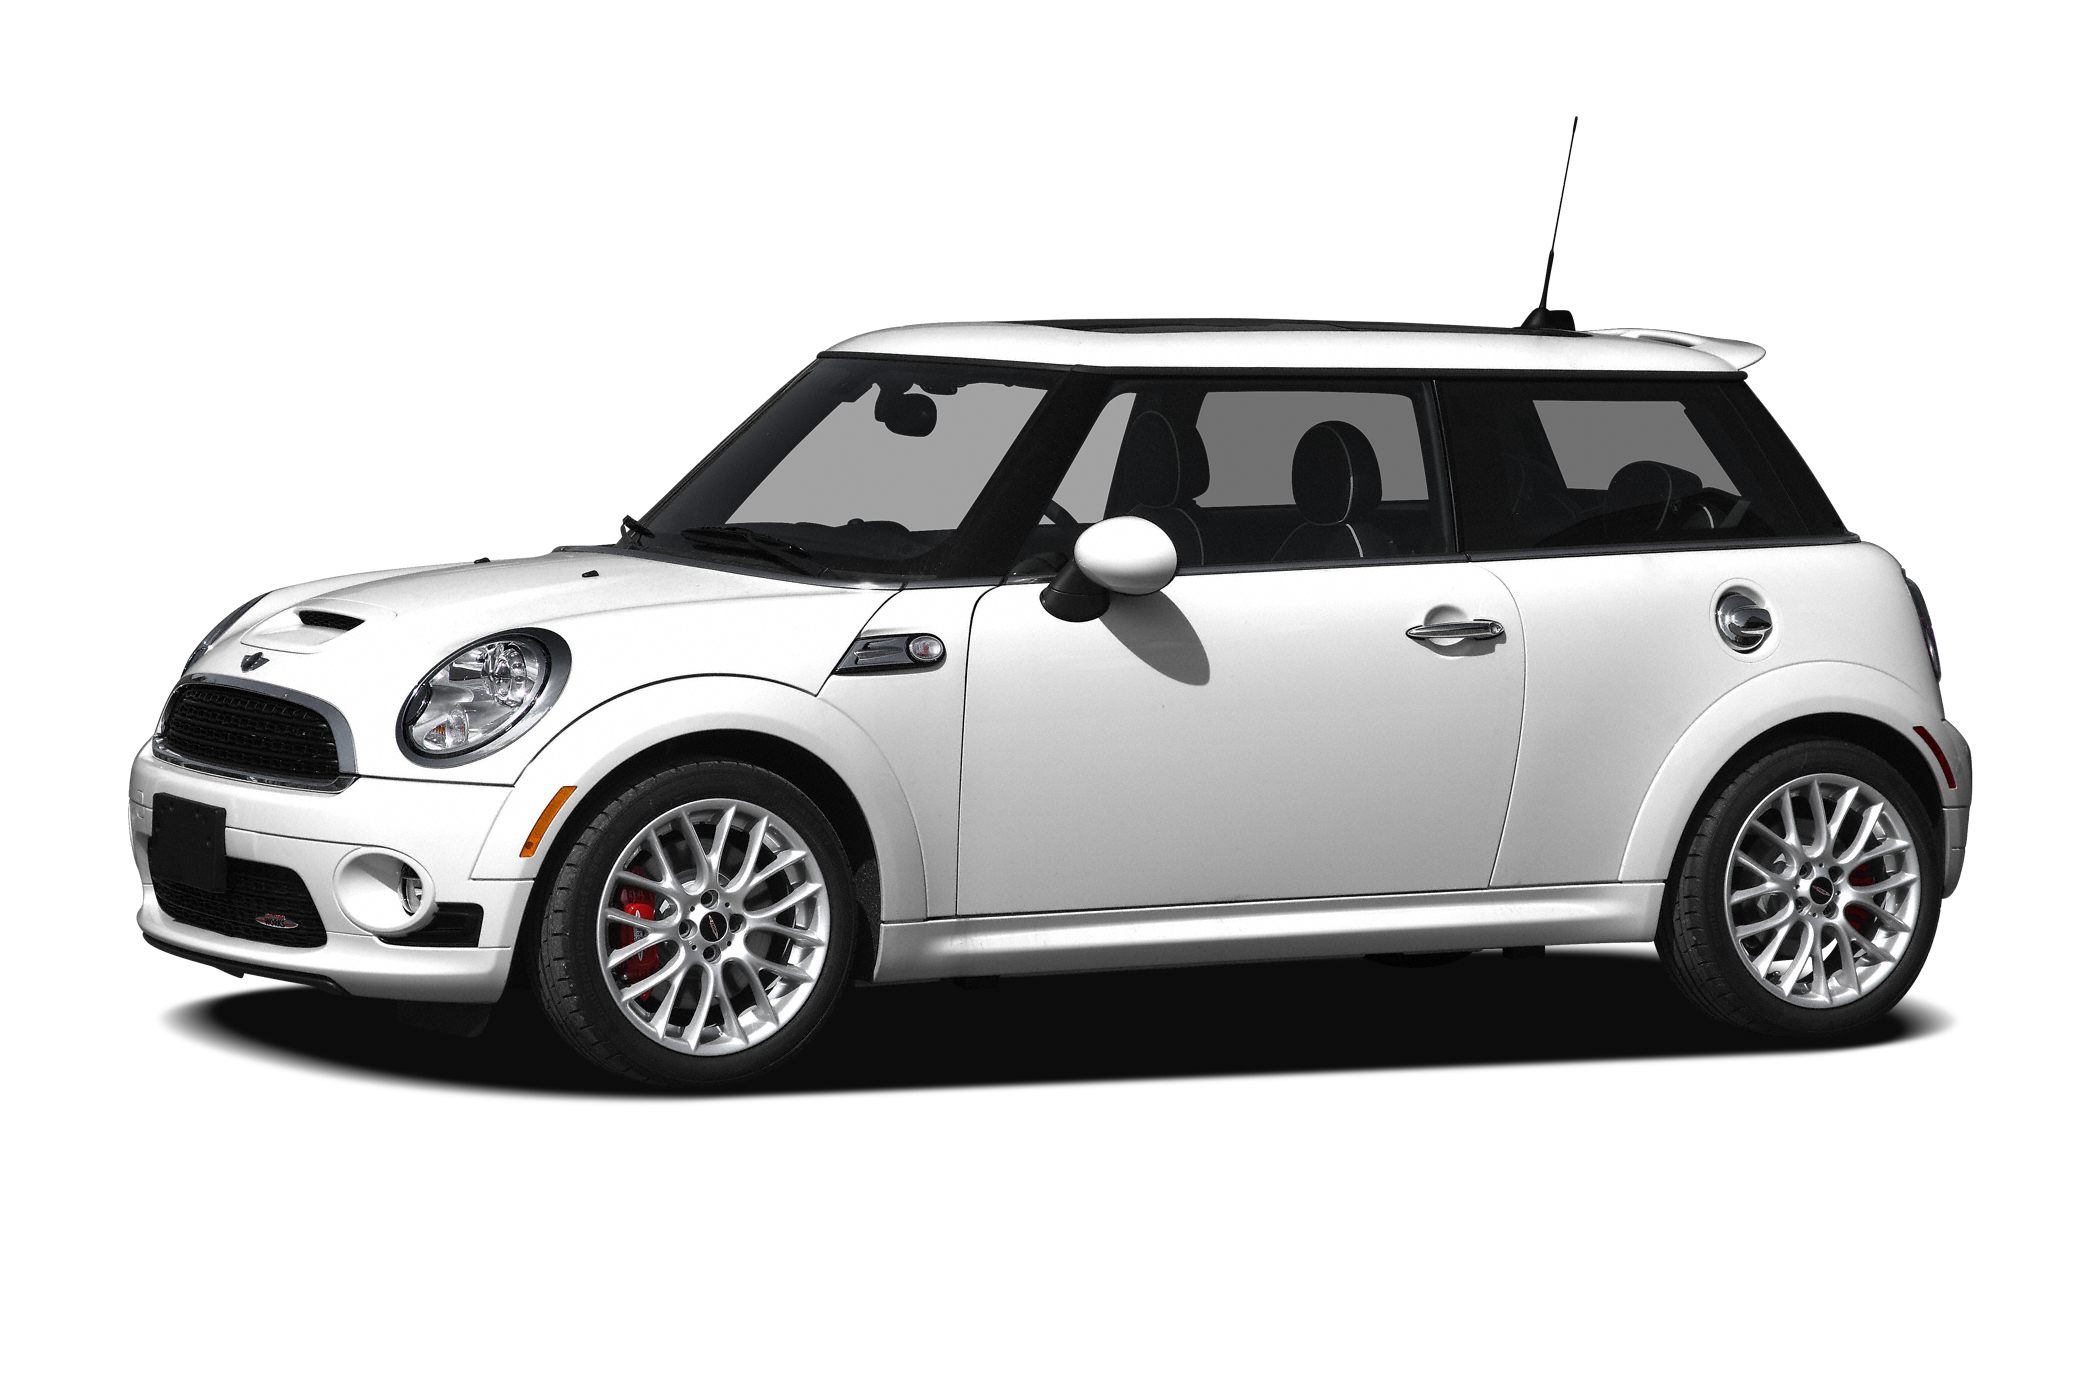 2010 Mini John Cooper Works Pricing And Specs